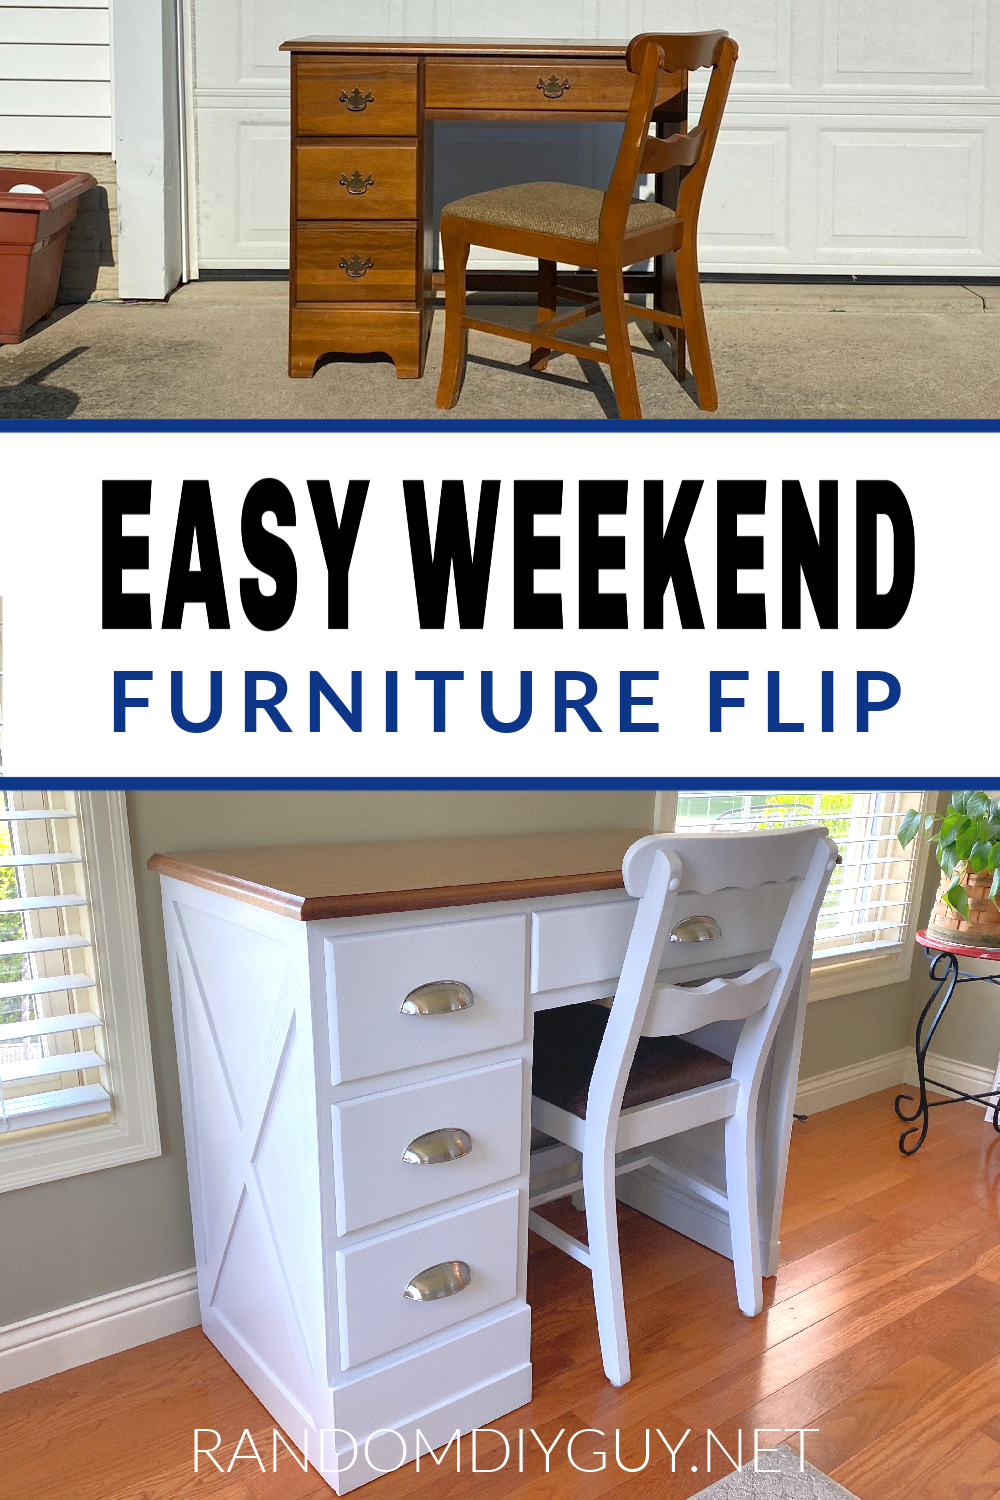 Check out this desk makeover to see how easy it is to refinish old furniture into more modern pieces with only trim, paint, and new hardware! #RandomDIYGuy #makeover #refinish #furnitureflip #restore #painted